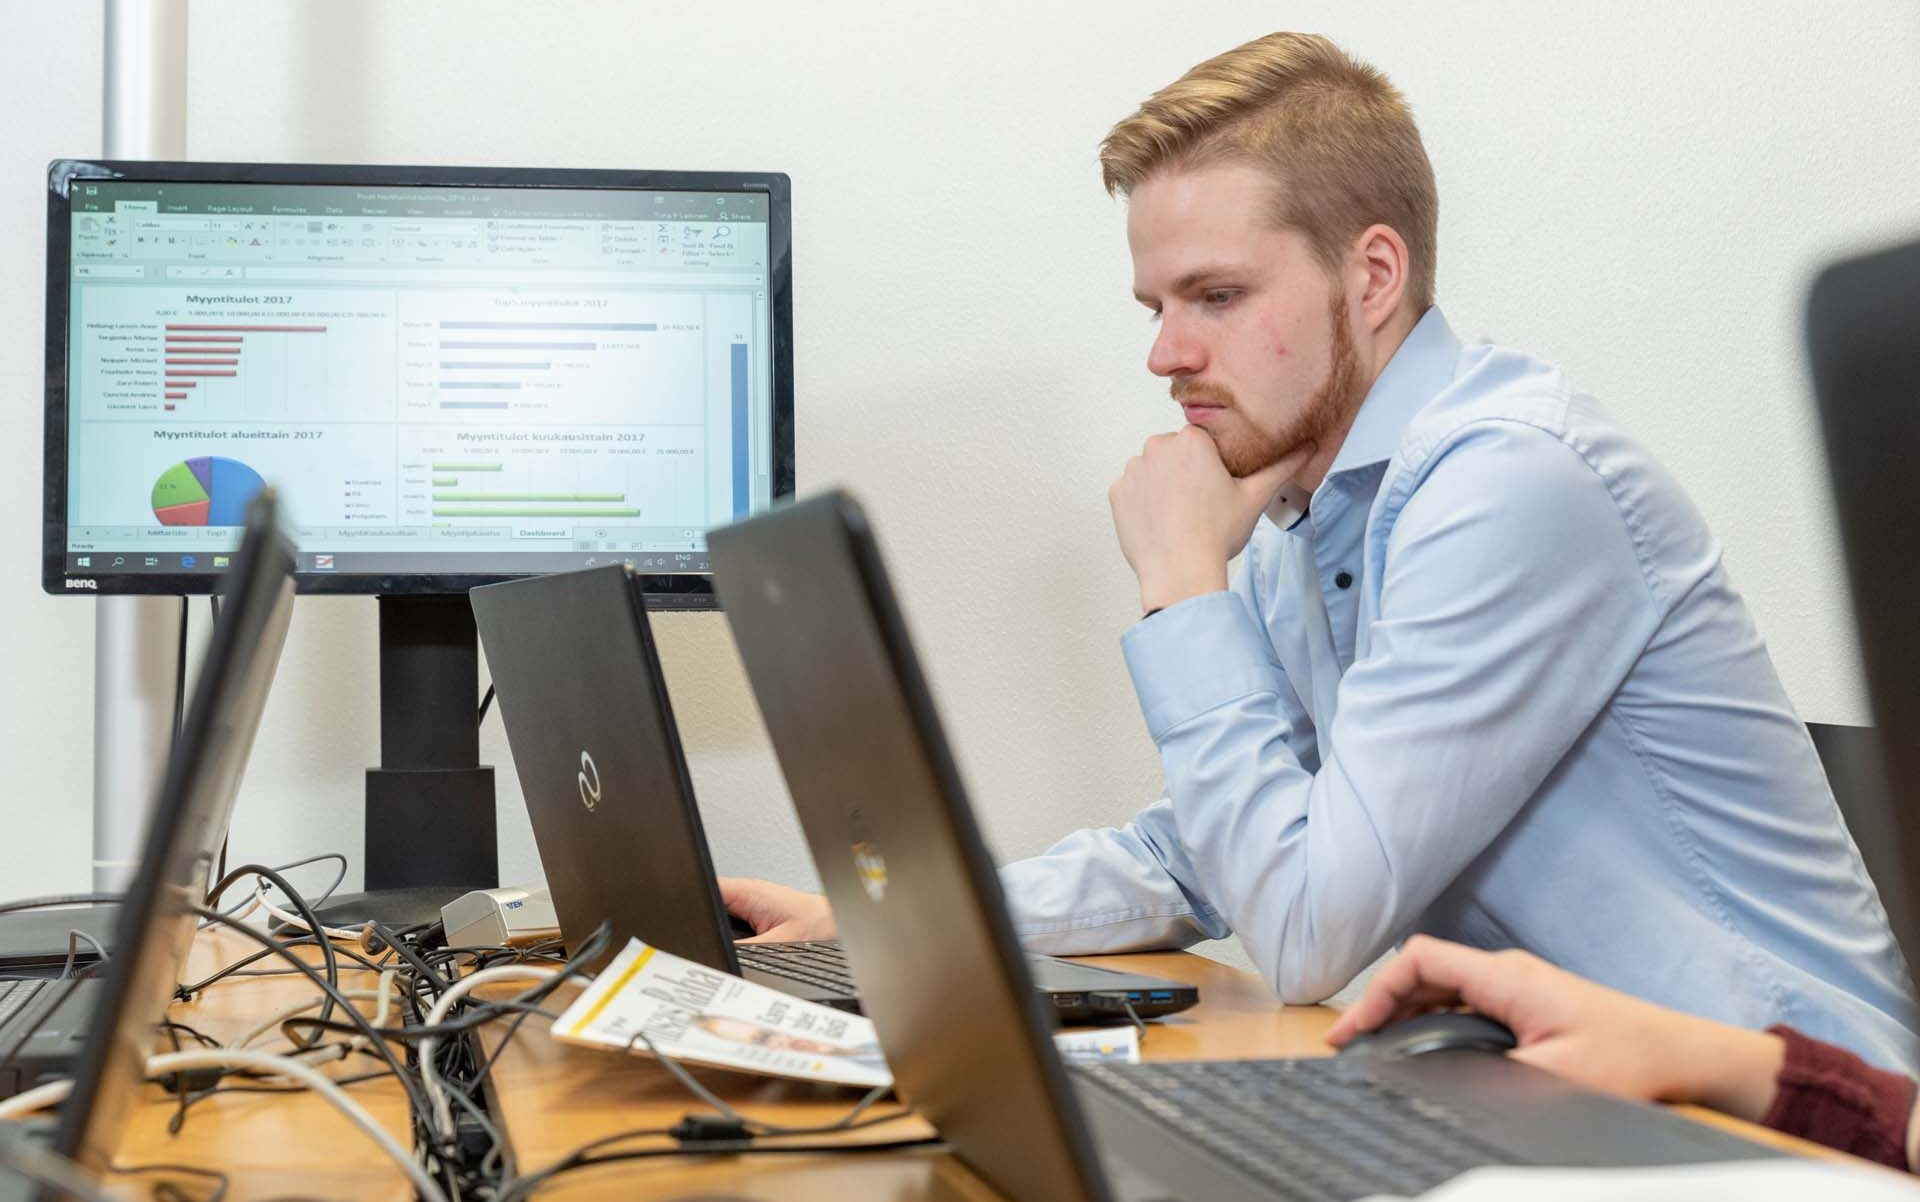 Man sitting in front of a laptop thinking and looking at its screen.